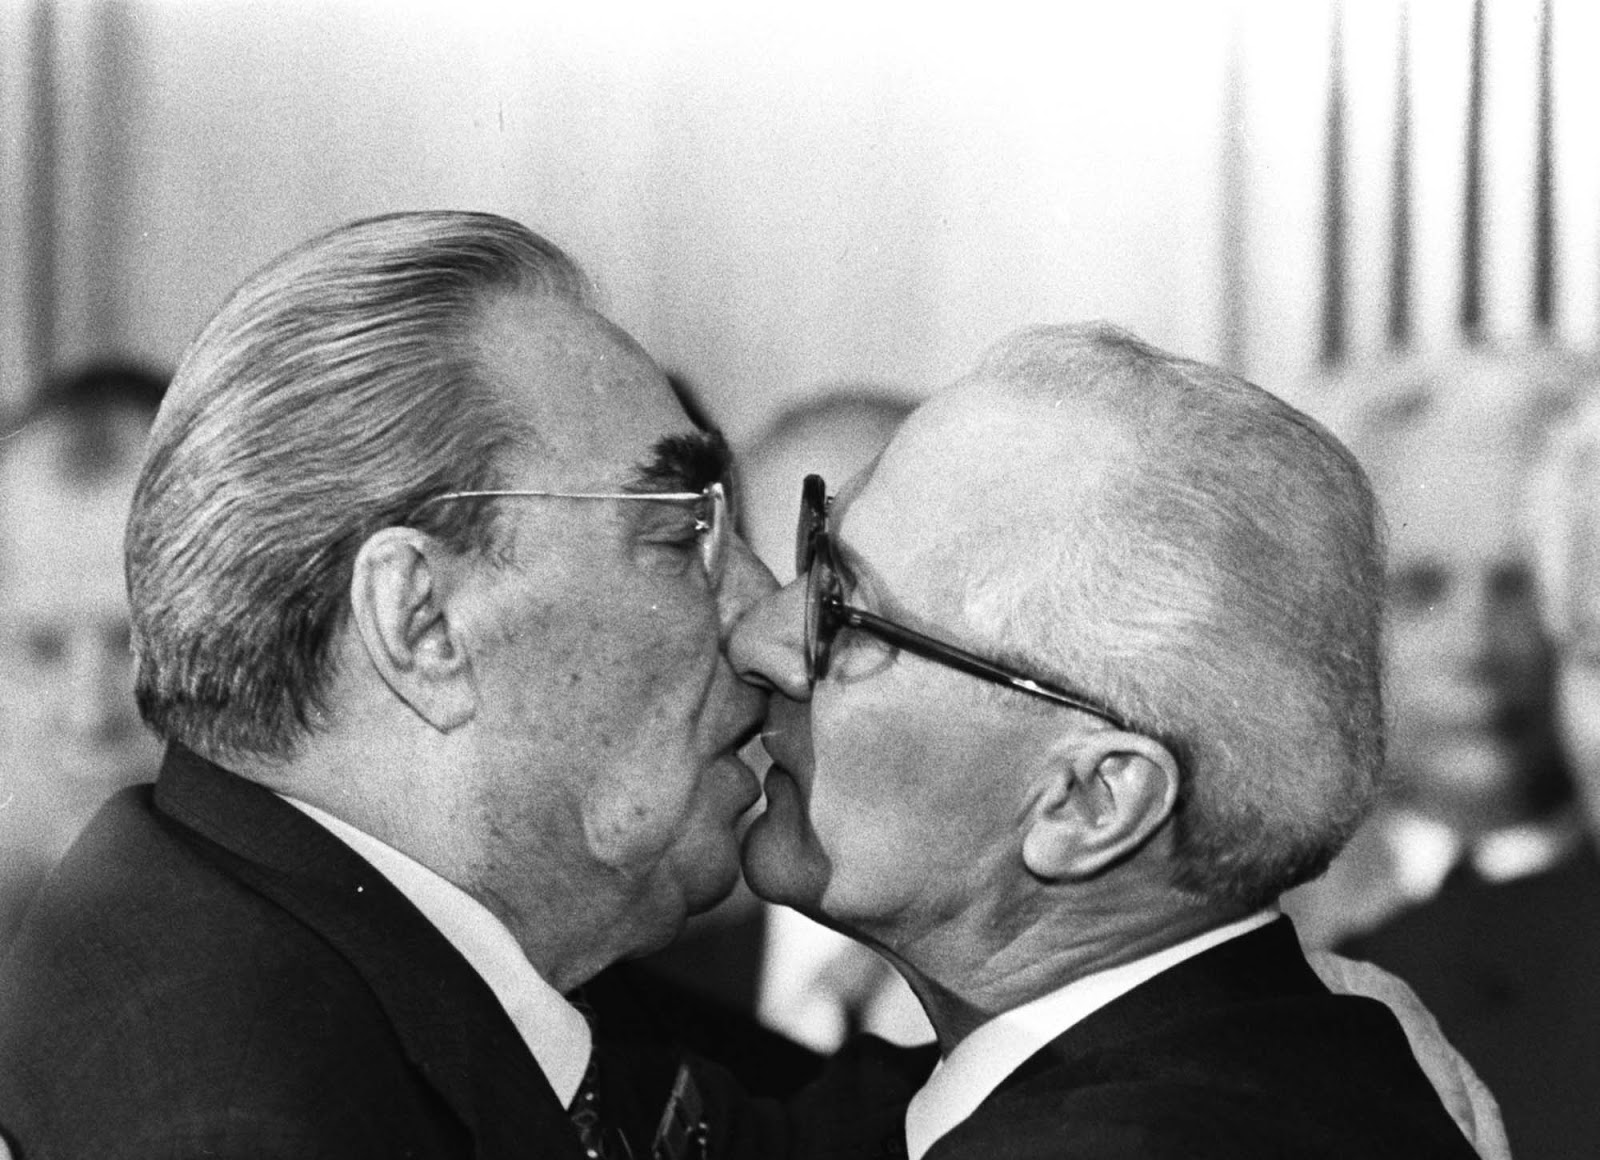 Soviet President Leonid Brezhnev and East German leader Erich Honecker change kisses after Brezhnev was honored with the title